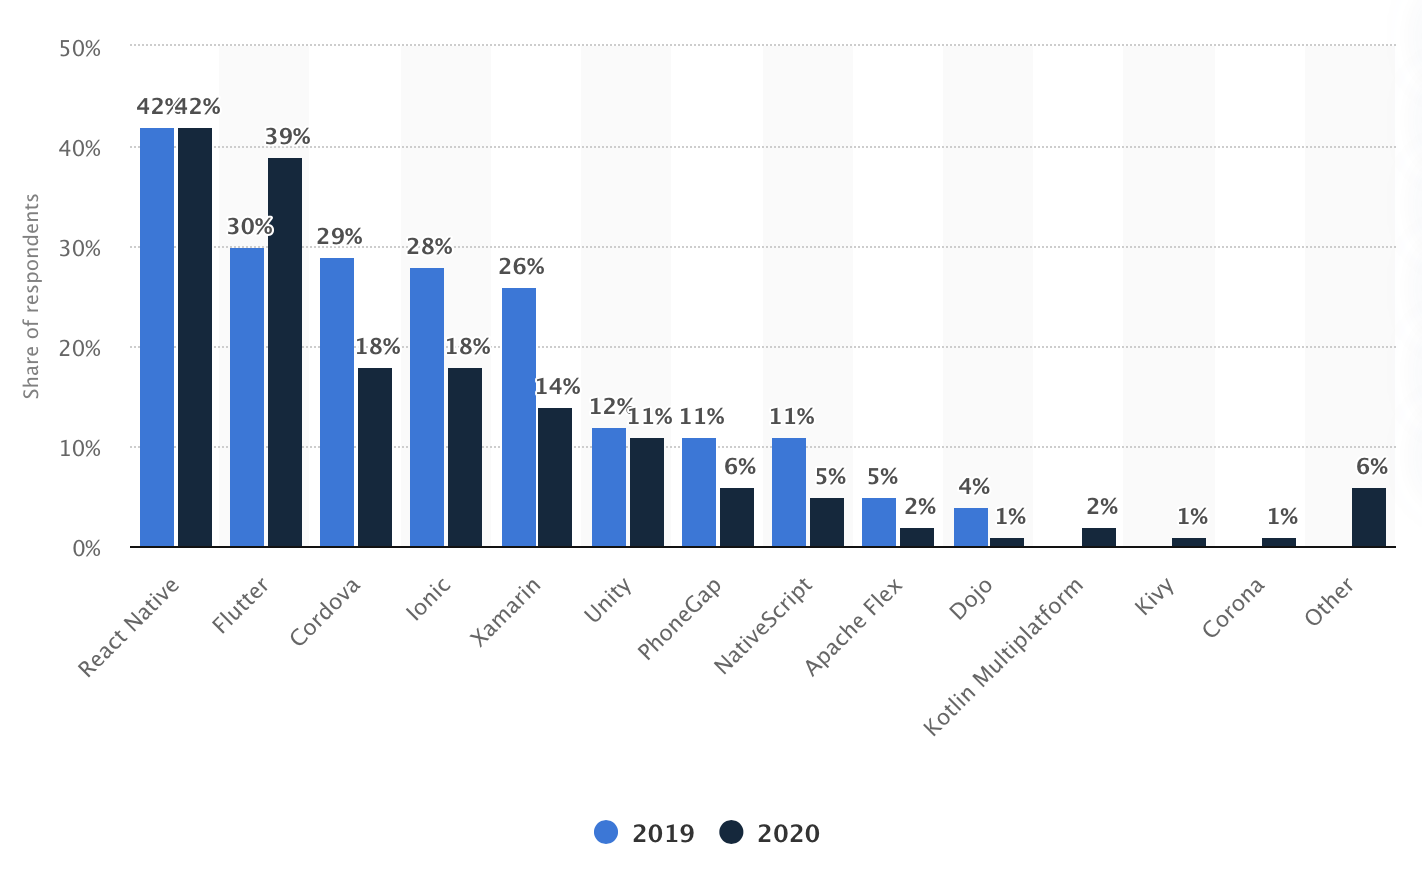 Graph showing that React Native is the most used framework for cross-mobile app development in 2019 and 2020